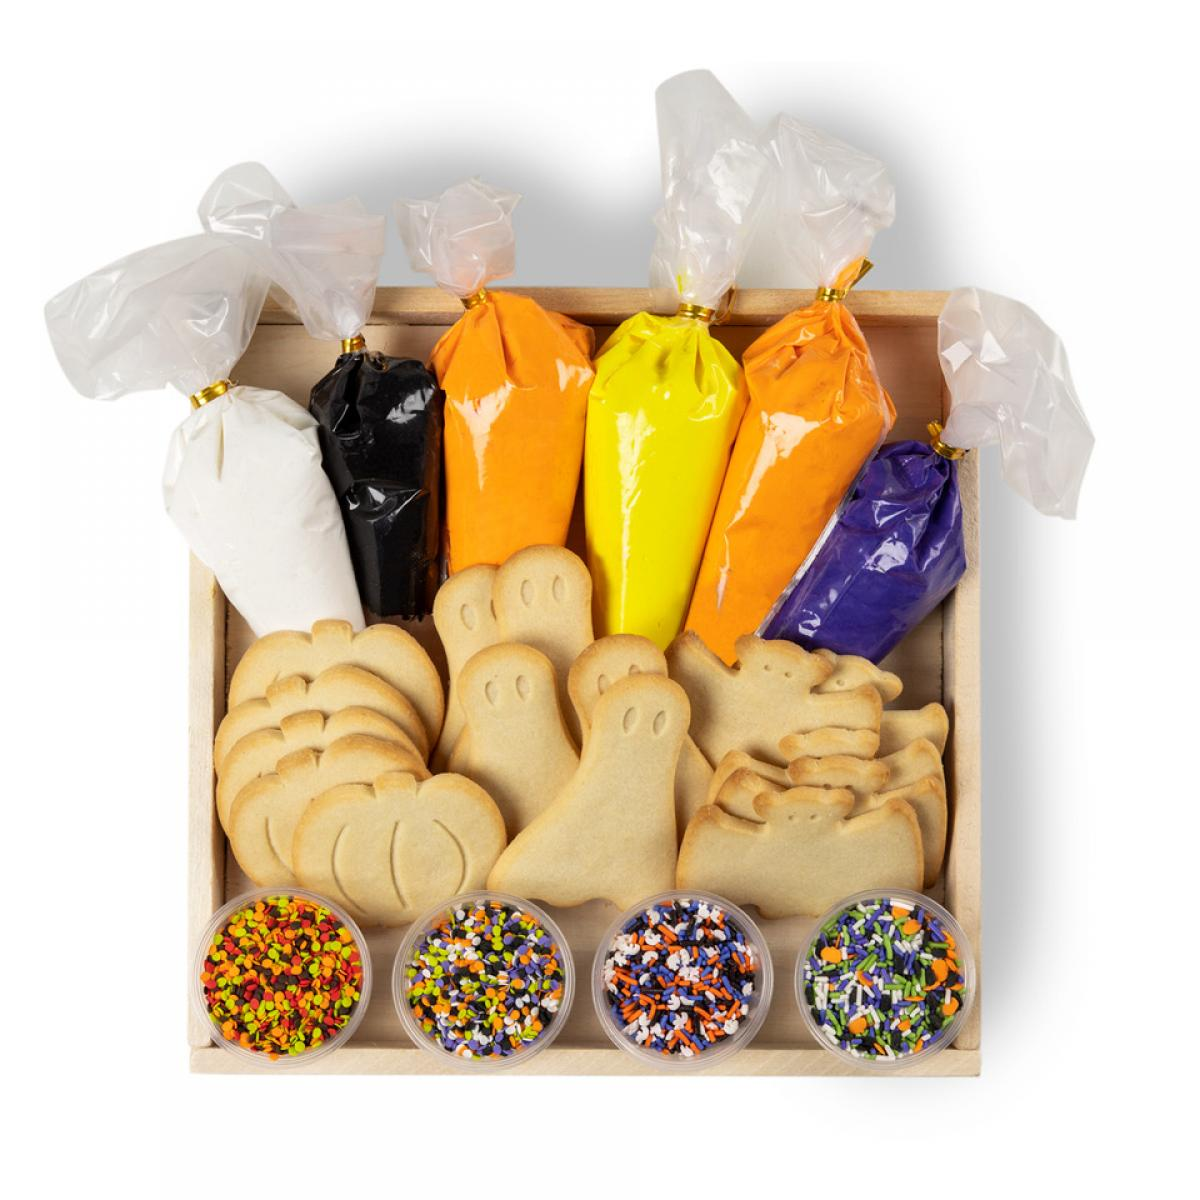 Halloween cookie decorating kit with ghost, bat and pumpkin cookies